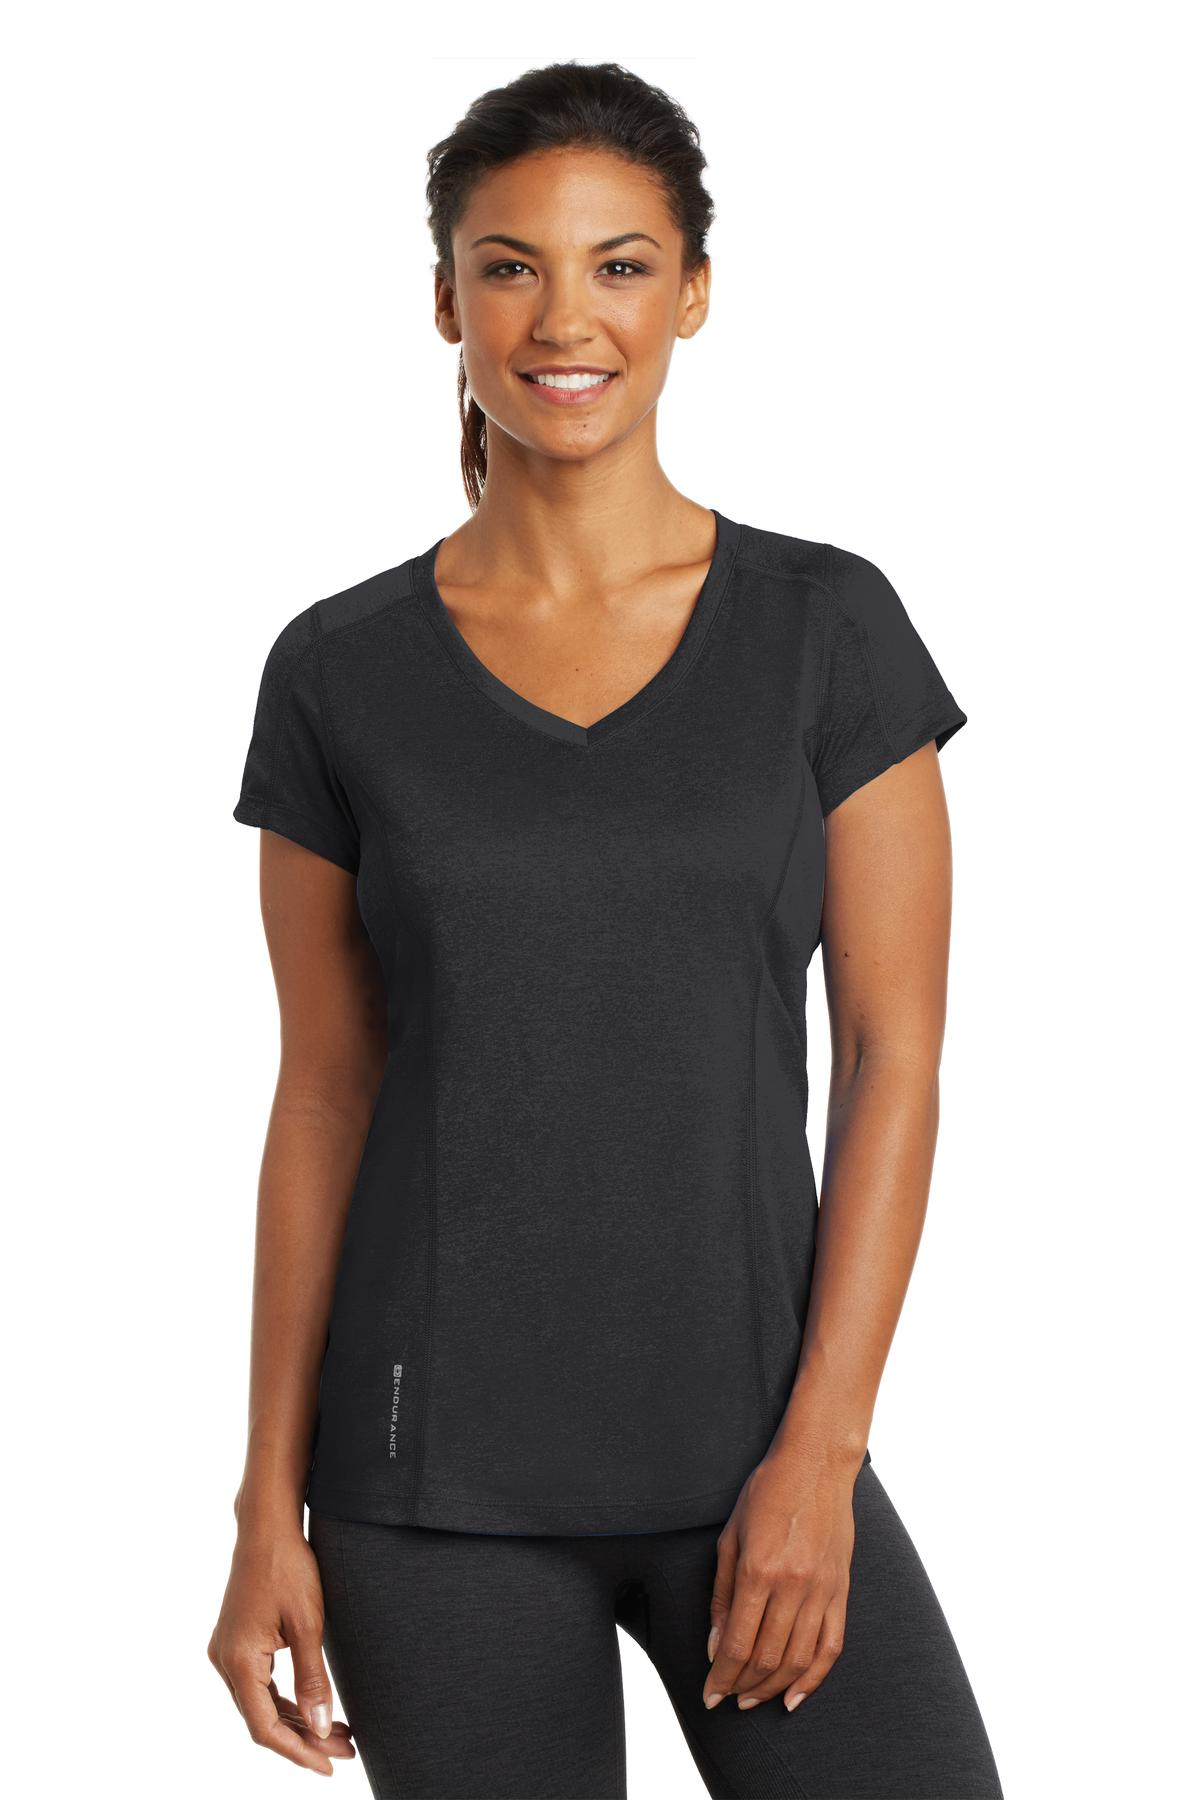 544691235-120 - OGIO® Endurance Ladies Pulse V-Neck Shirt - thumbnail